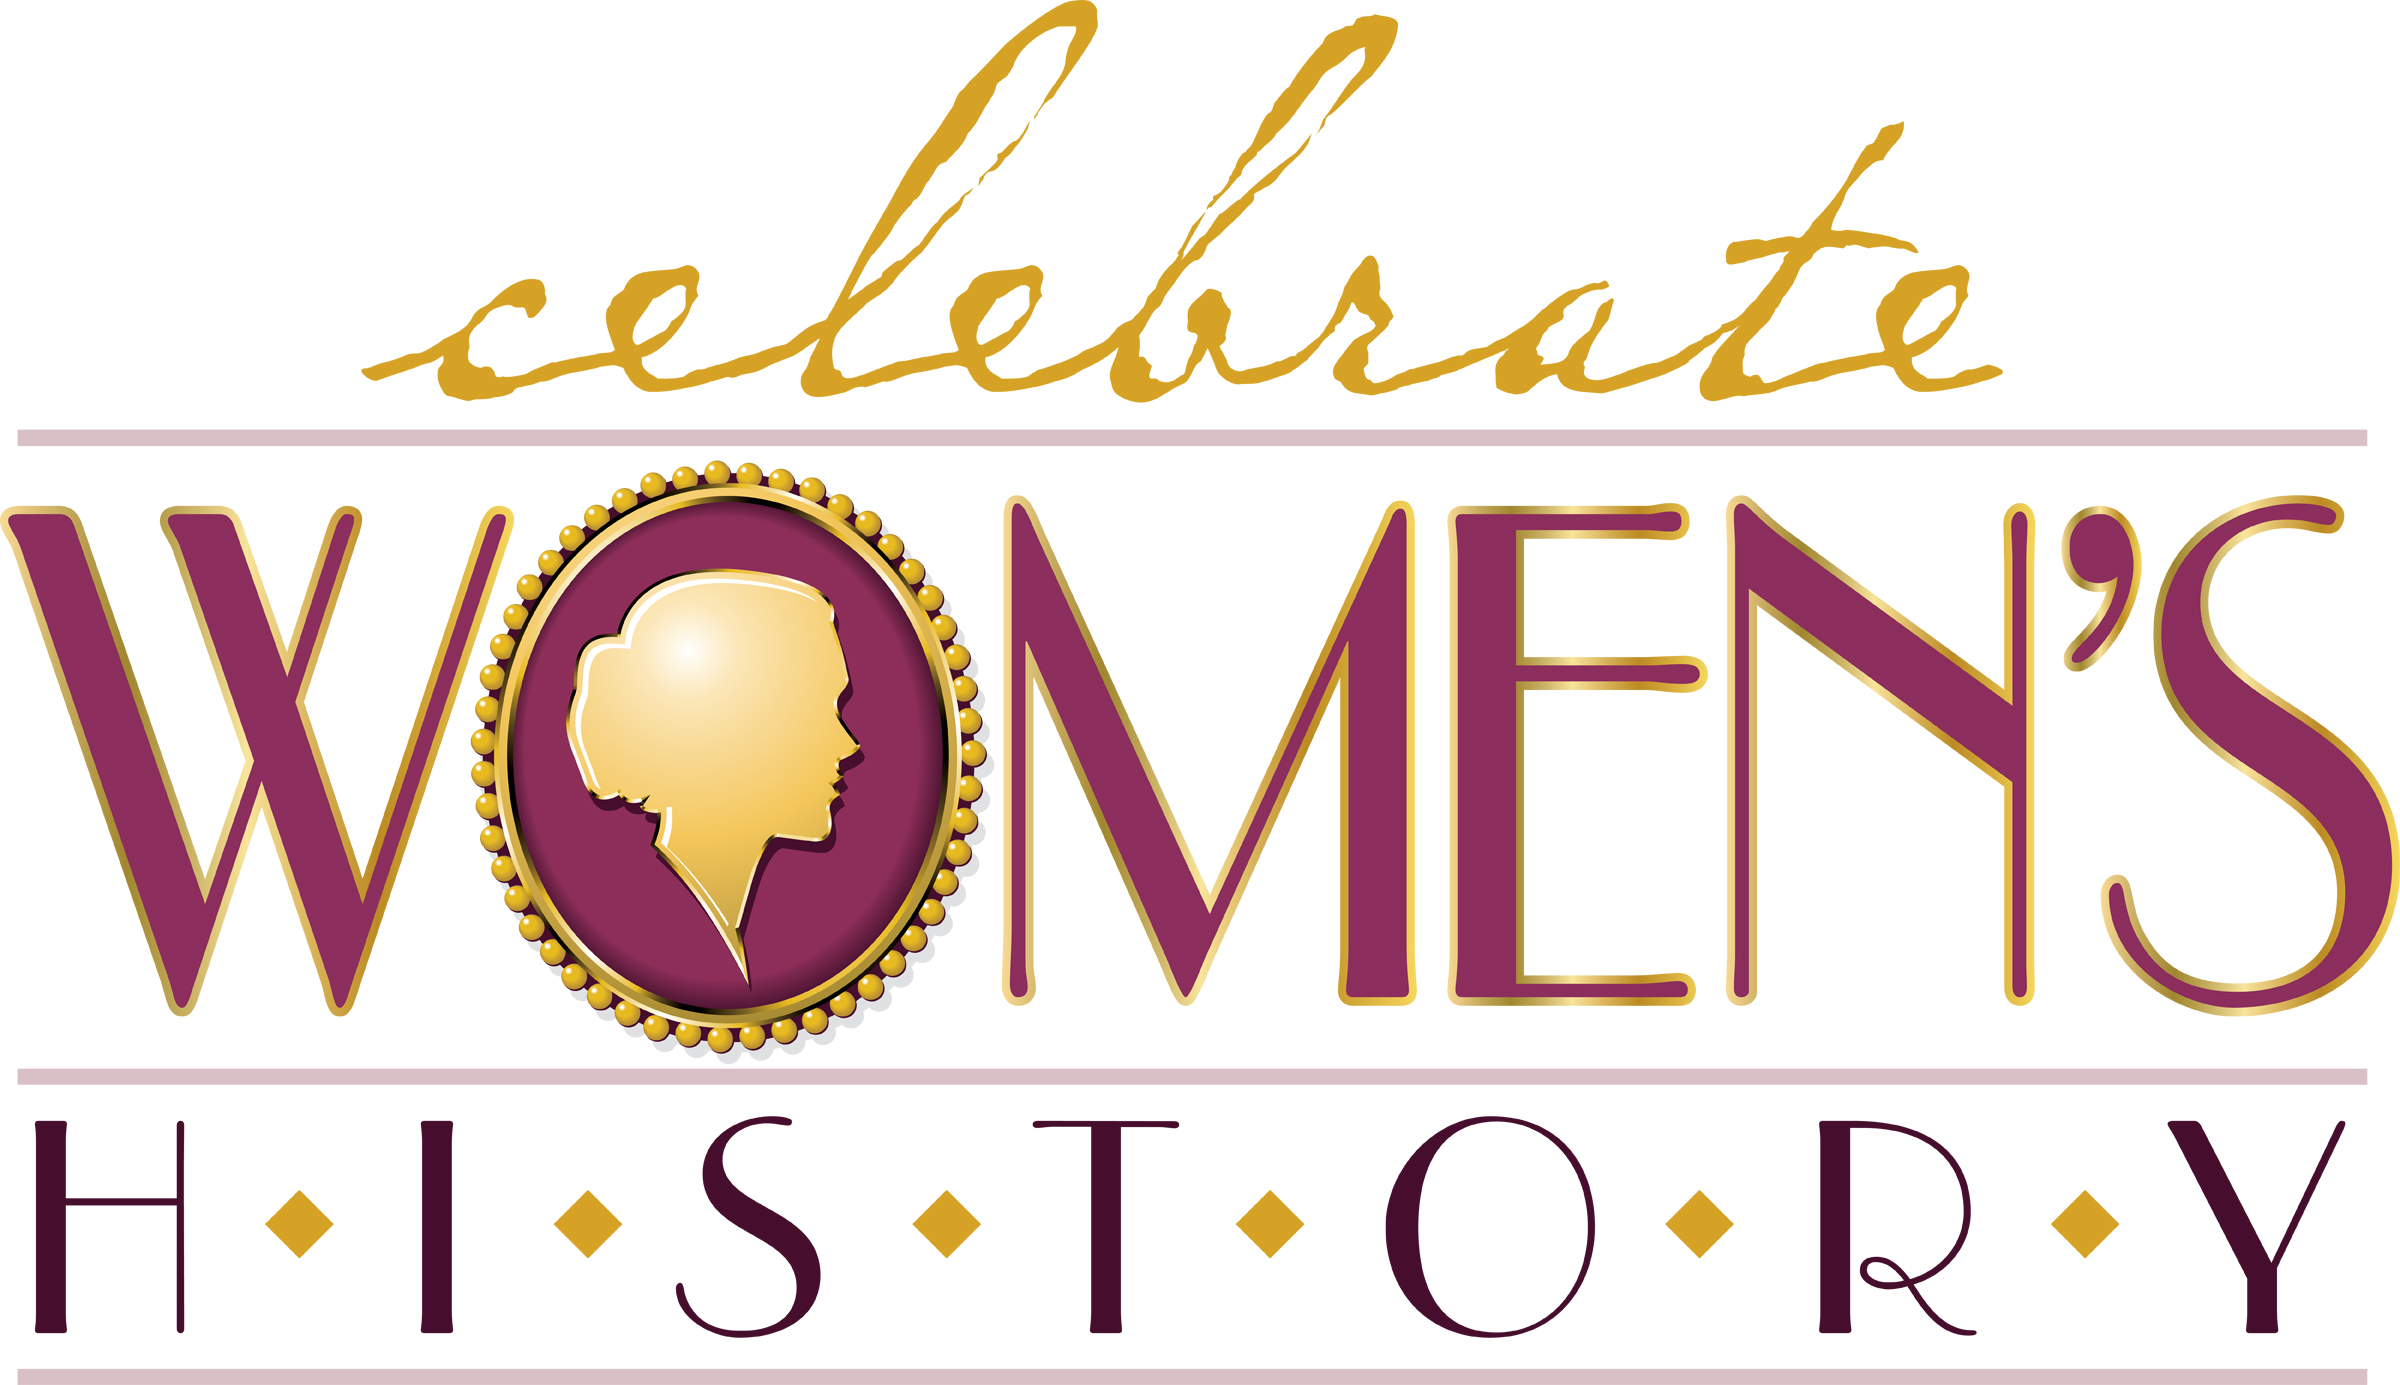 Celebrating Women's History Month: Indiana Women's Roles In History